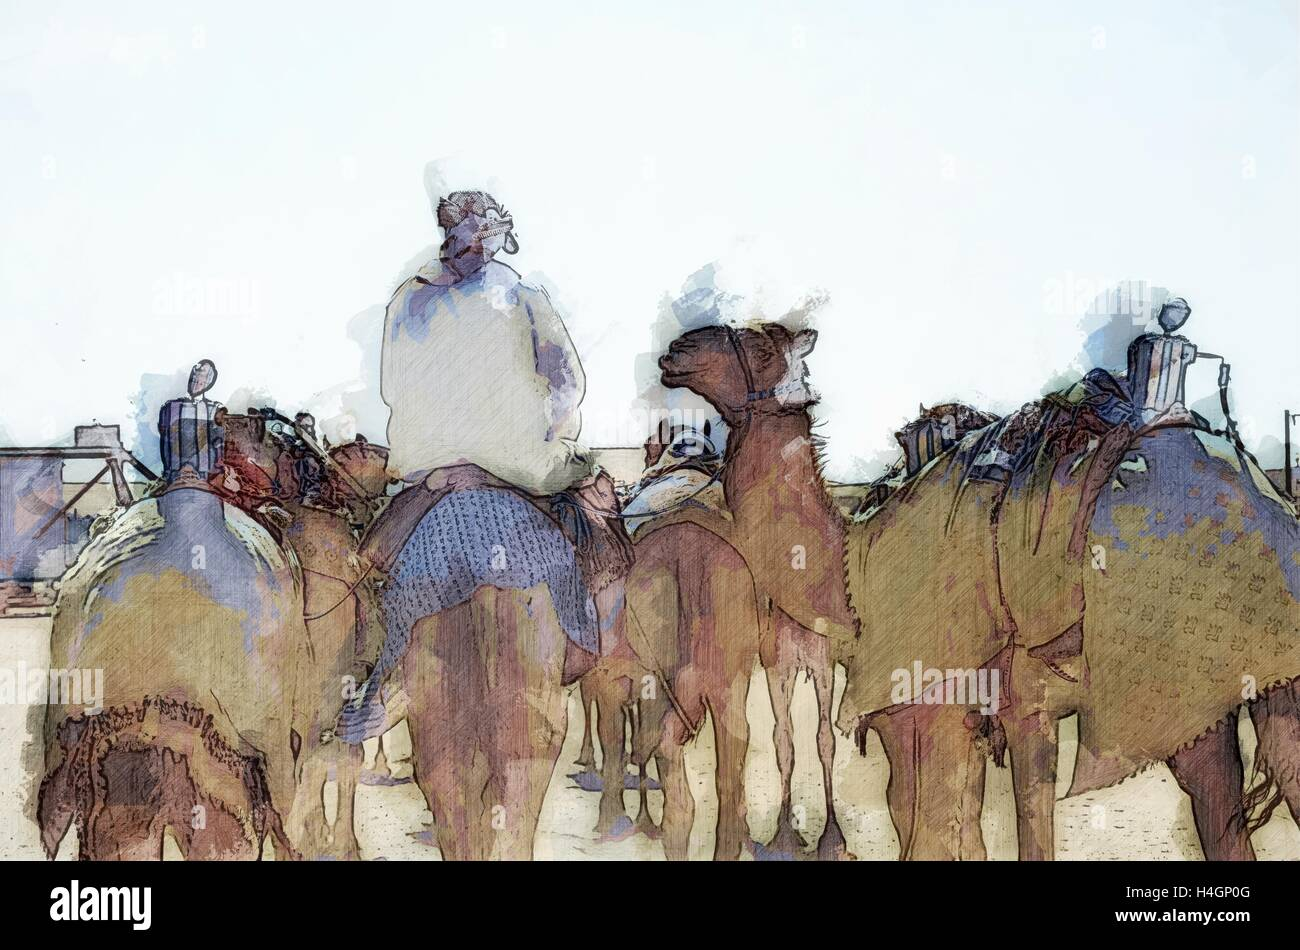 Camel Drawing Stock Photos & Camel Drawing Stock Images - Alamy